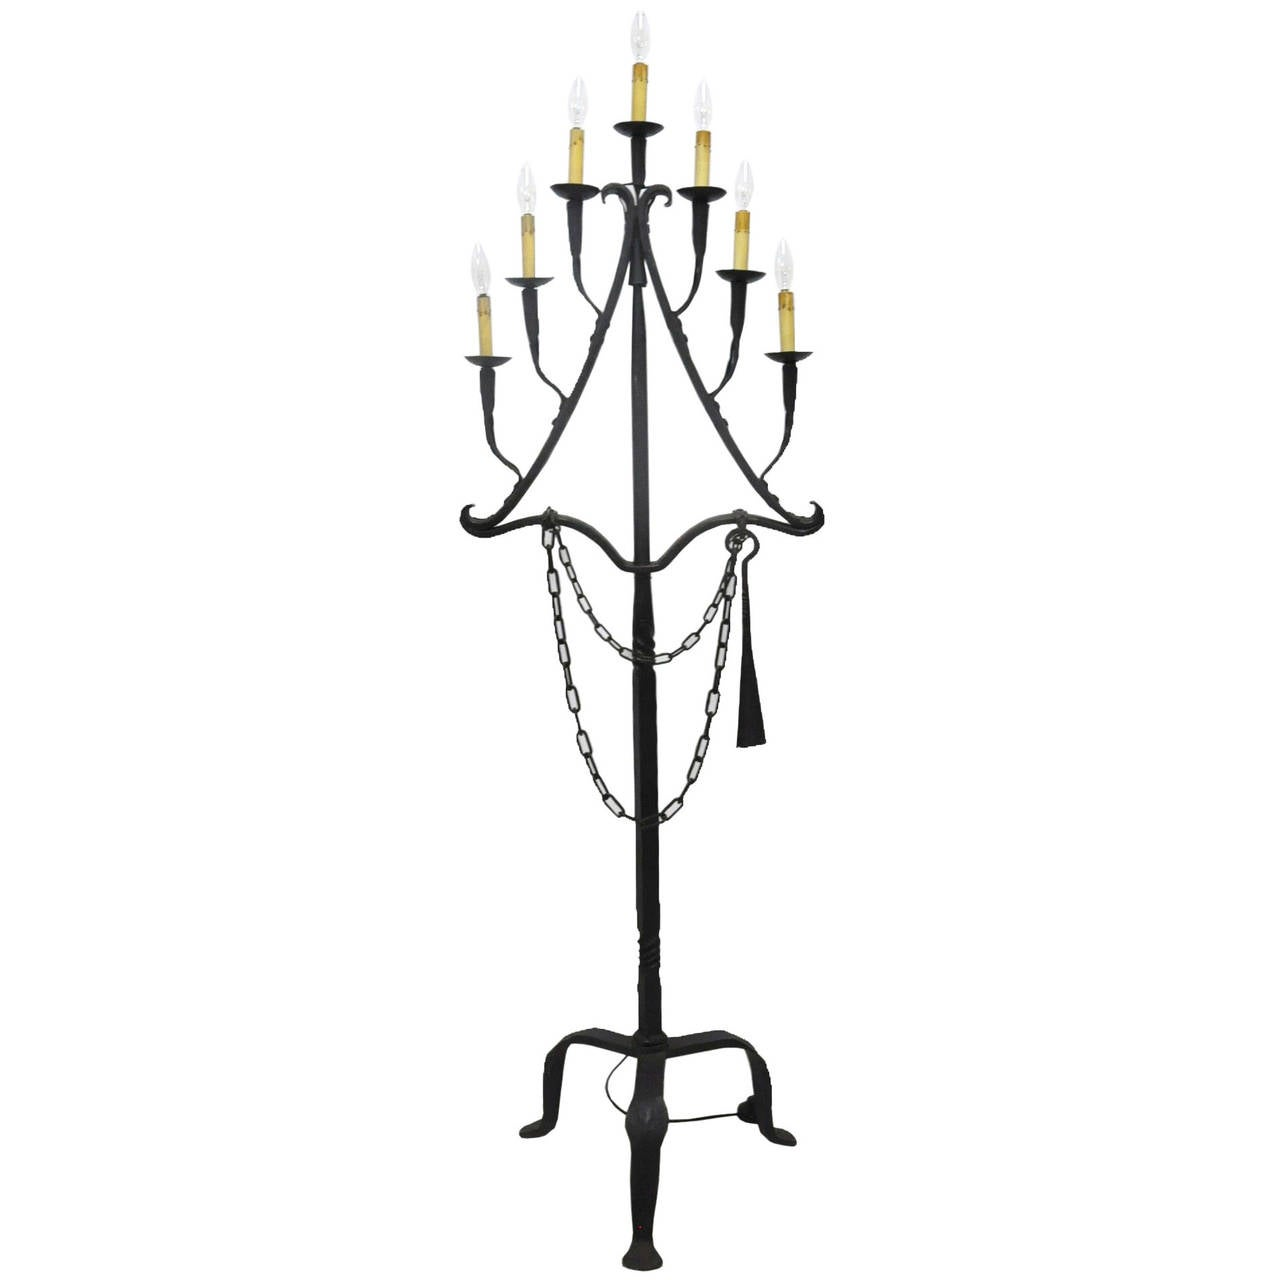 Antique 18th Century Wrought Iron Floor Lamp For Sale at